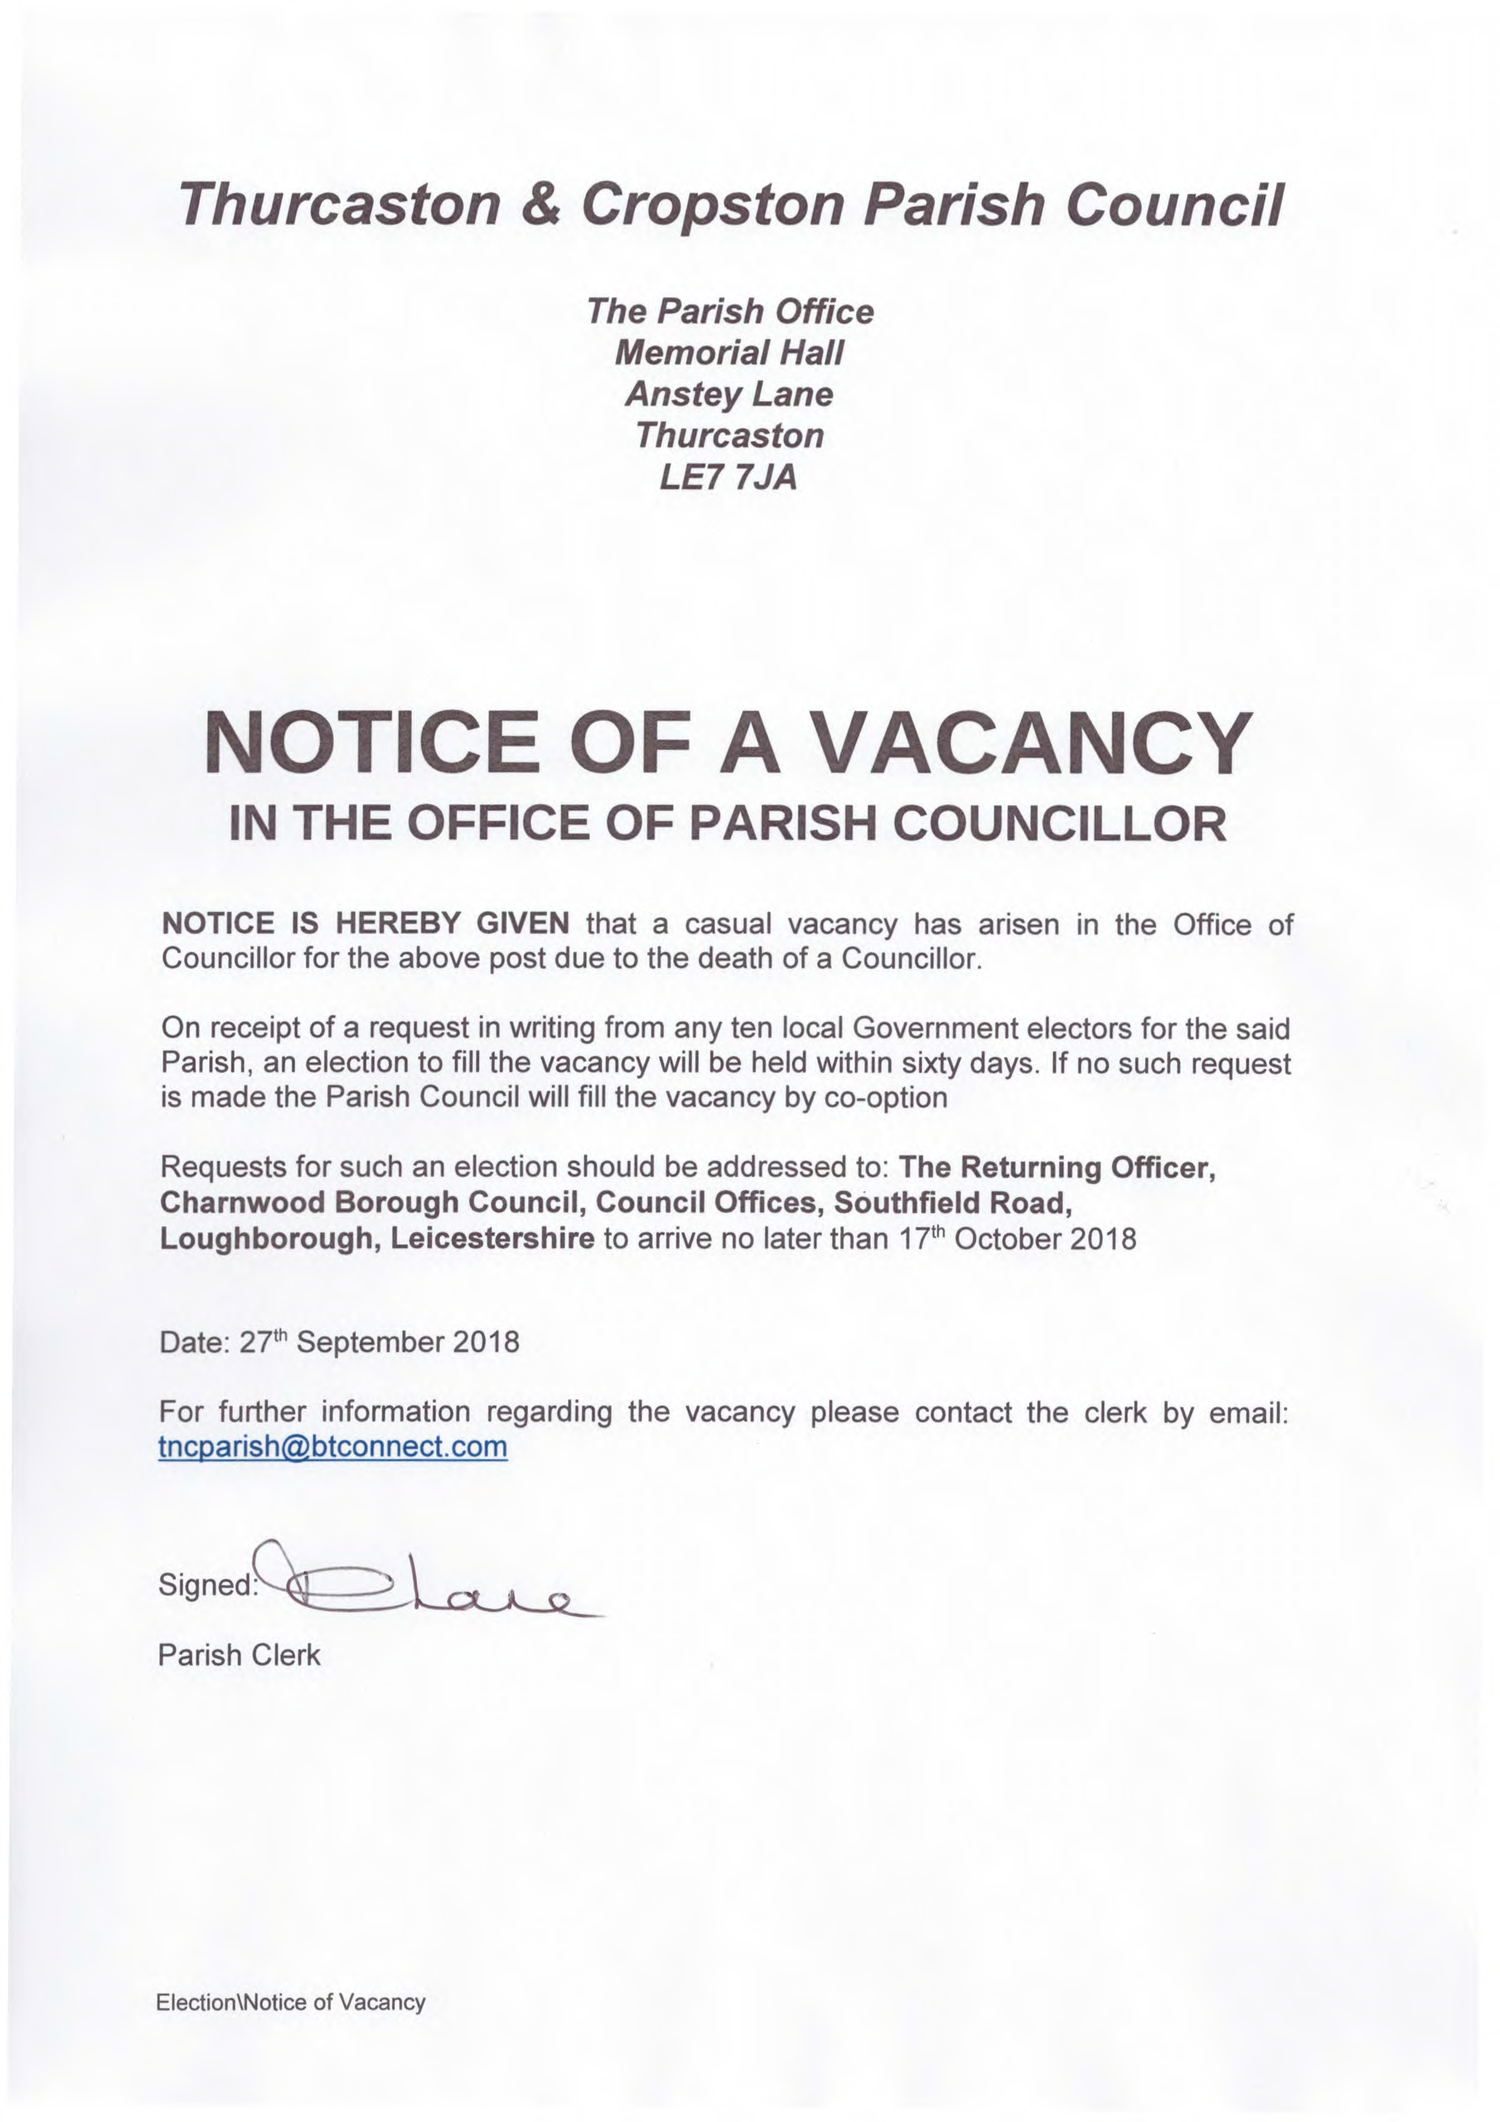 NOTICE OF VACANCY IN THE OFFICE OF PARISH COUNCILLOR — Thurcaston